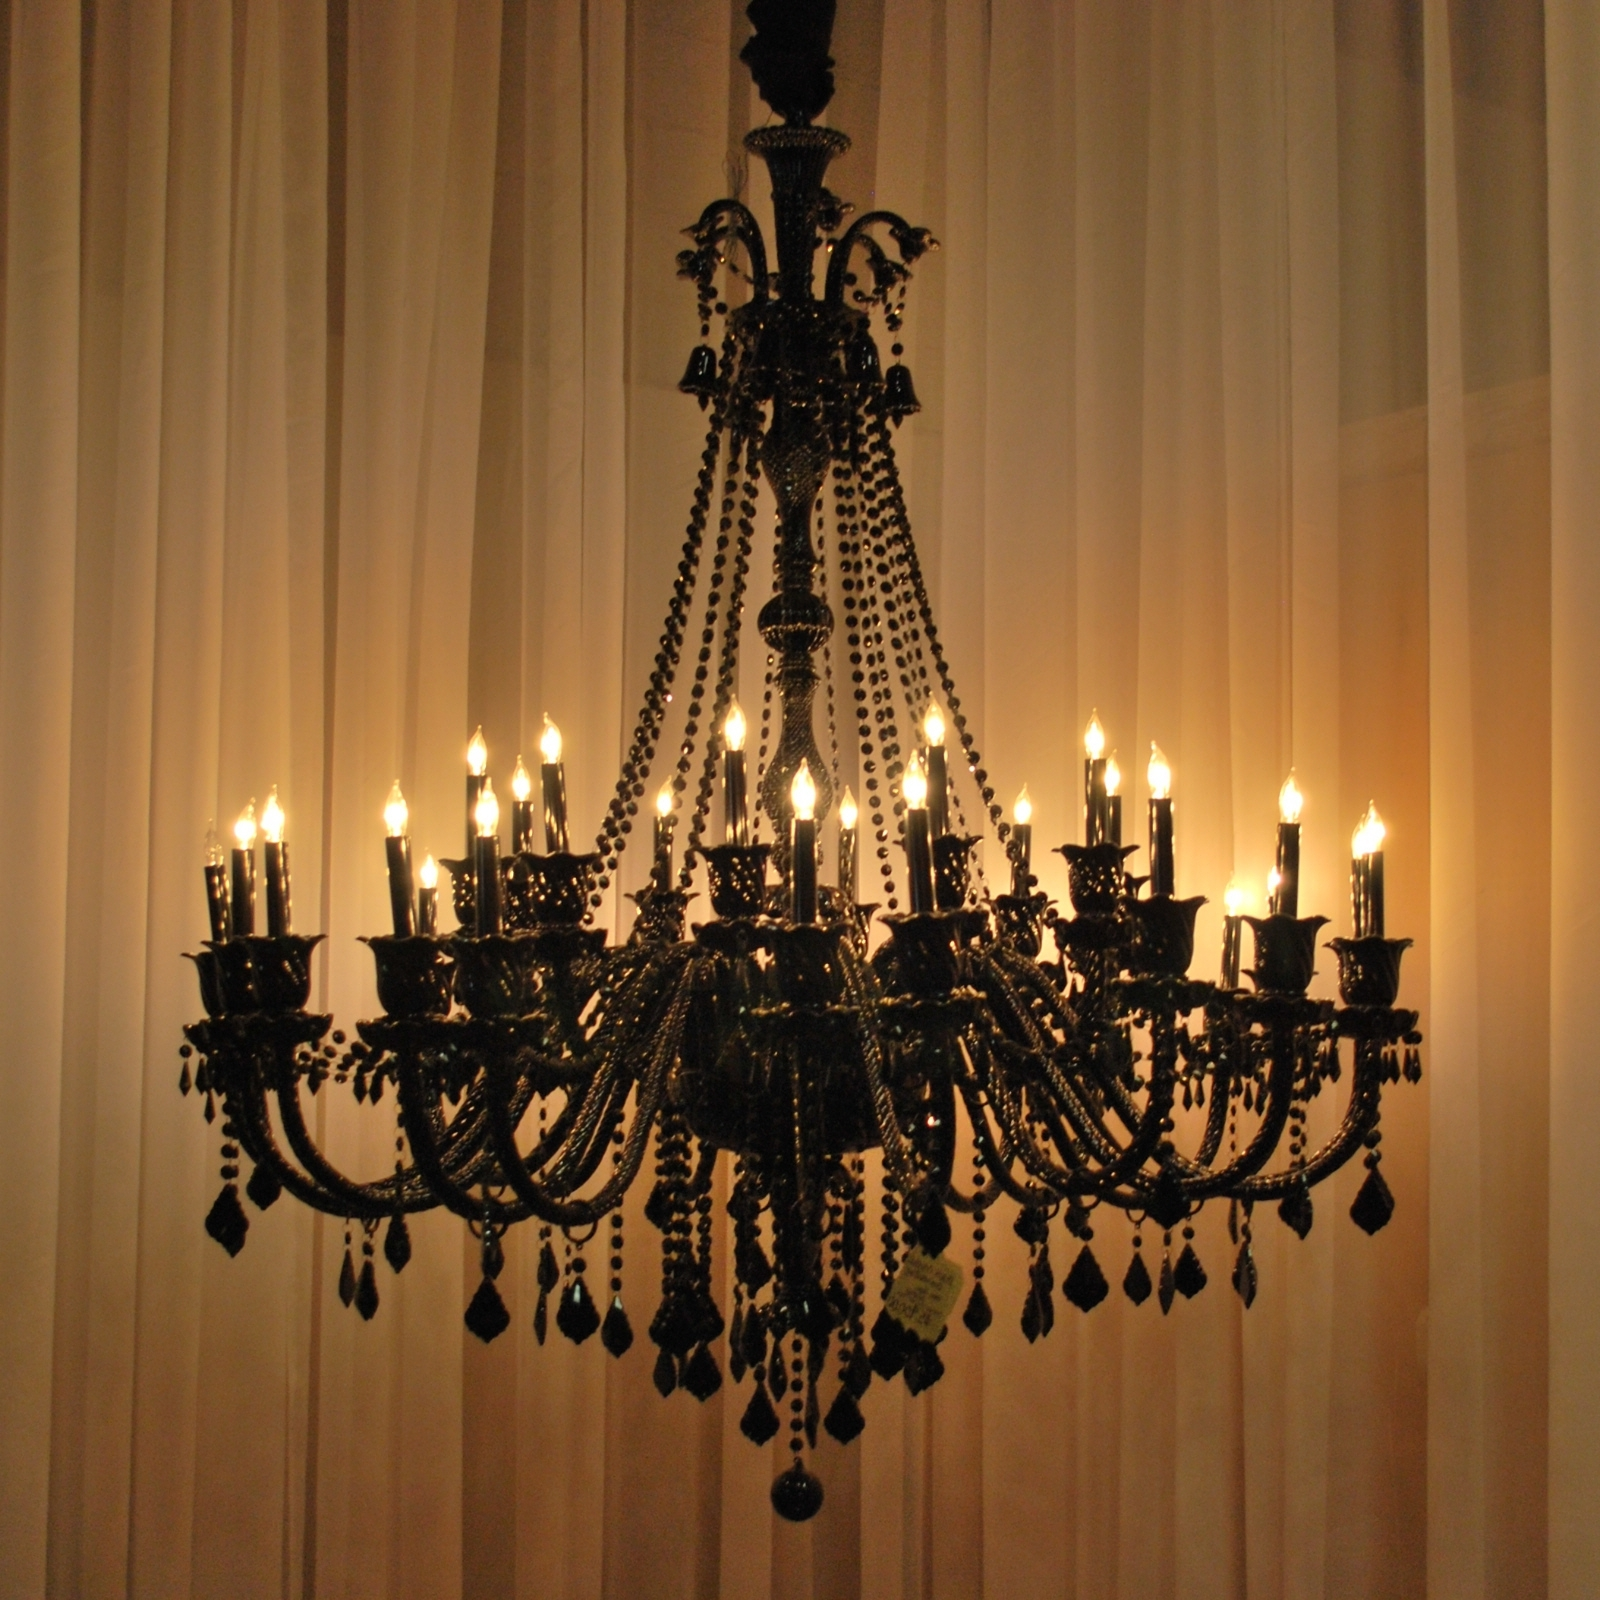 Chandeliers Vintage For Well Known Gothic Style Chandeliers Vintage Spanish Iron And Wood Eight Arm (View 2 of 20)